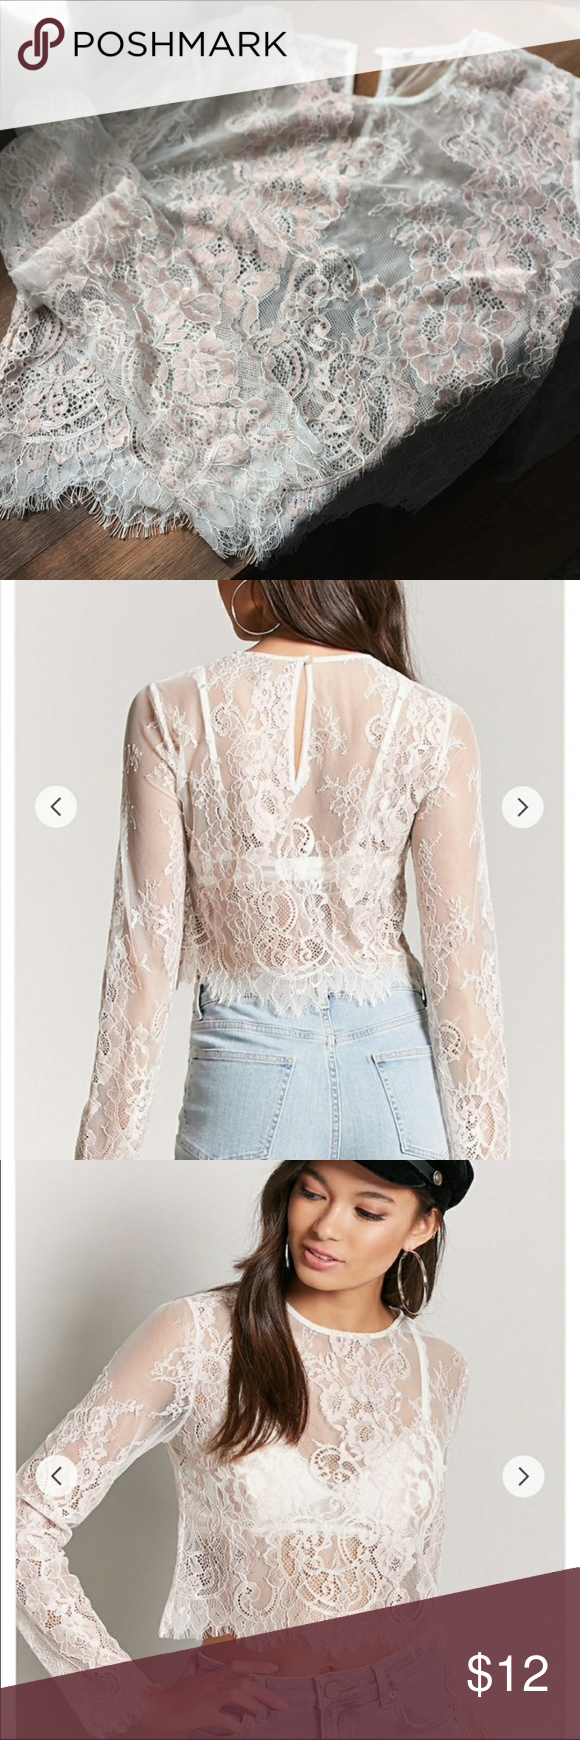 683bc0b3ba9e0c Forever 21 sheer lace blouse crop top Blush pink nude sheer lace top, long  sleeves. Visit. April 2019